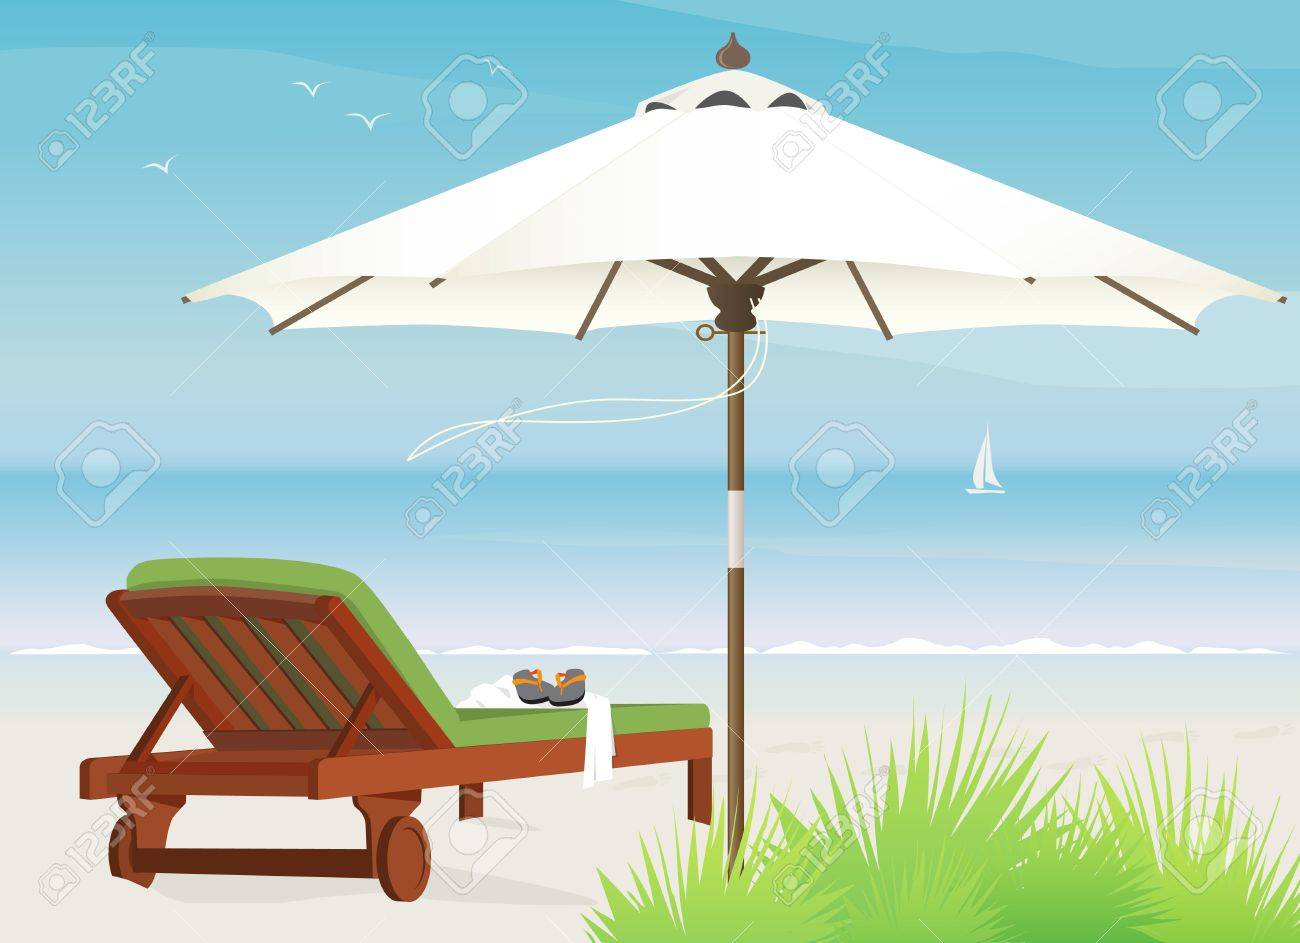 Relaxing scene on a breezy day at the beach, chaise lounge and market umbrella Stock Vector - 9801004